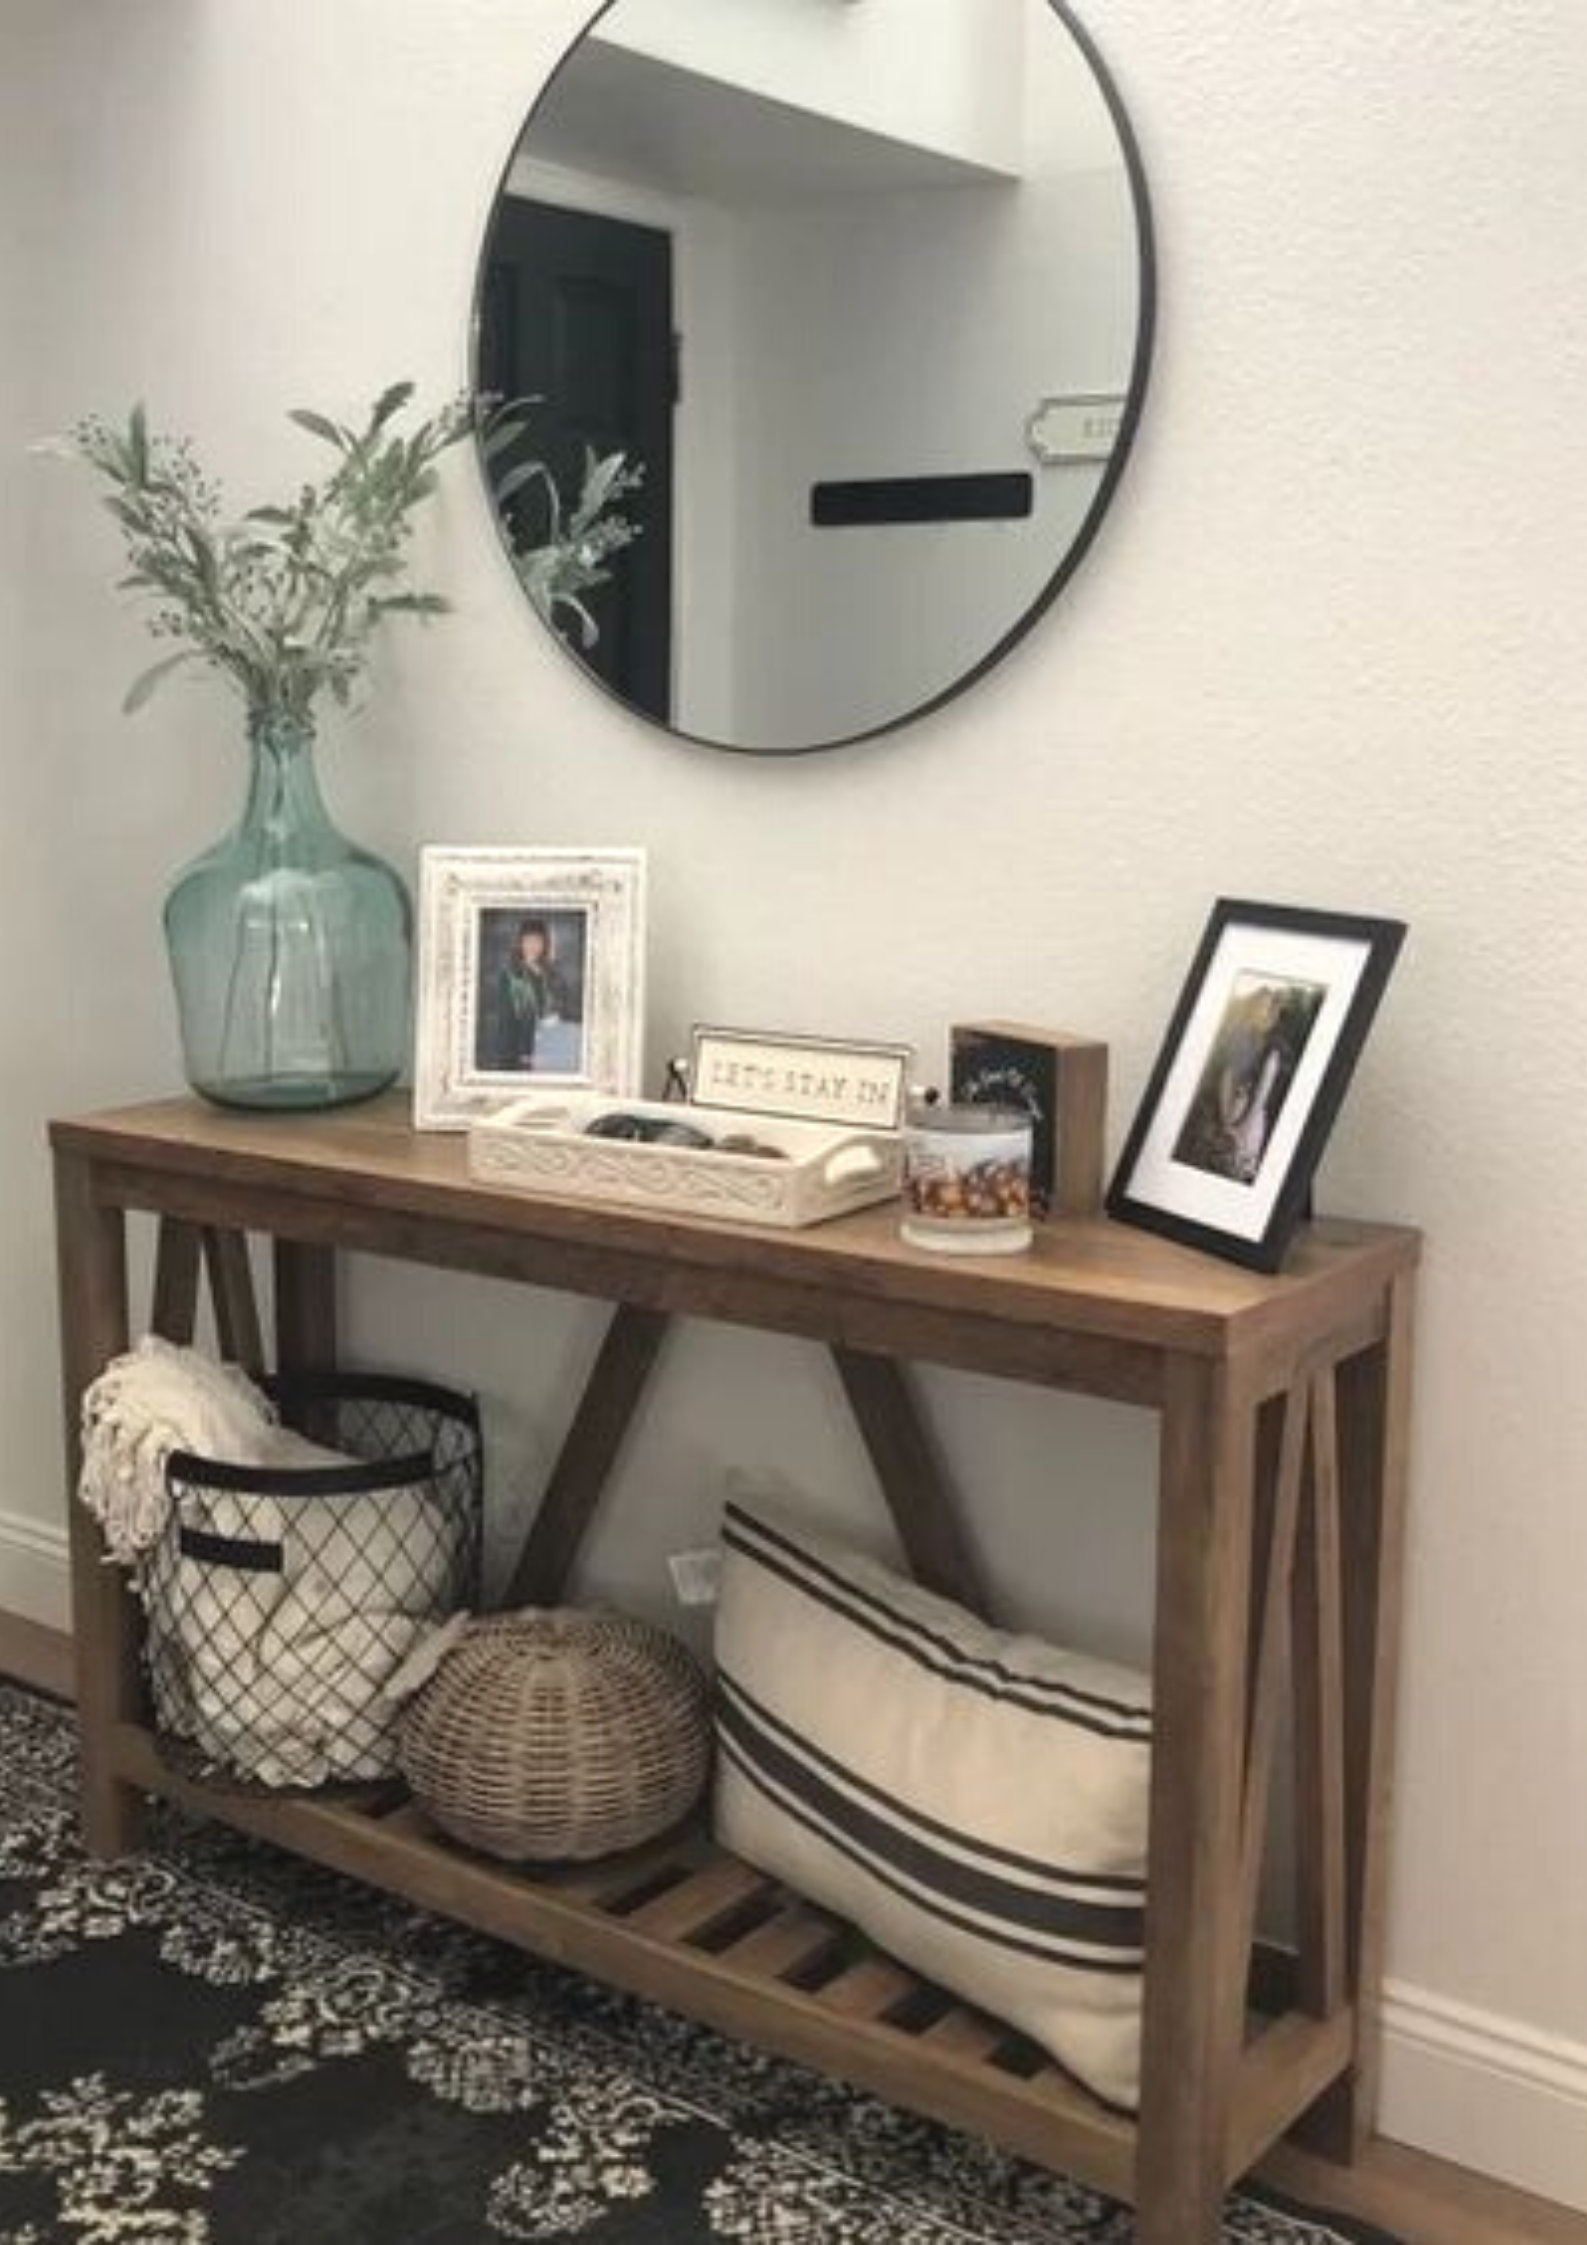 Organized your hallway or entryway with putting together furniture, decor, rugs, and lighting that create a wow factor as soon as you or guests walk in the front door. Check out our most recommended entry table ideas and go style your entryway happily! #entryway #entry #table #entrytableideas #entrywayideas